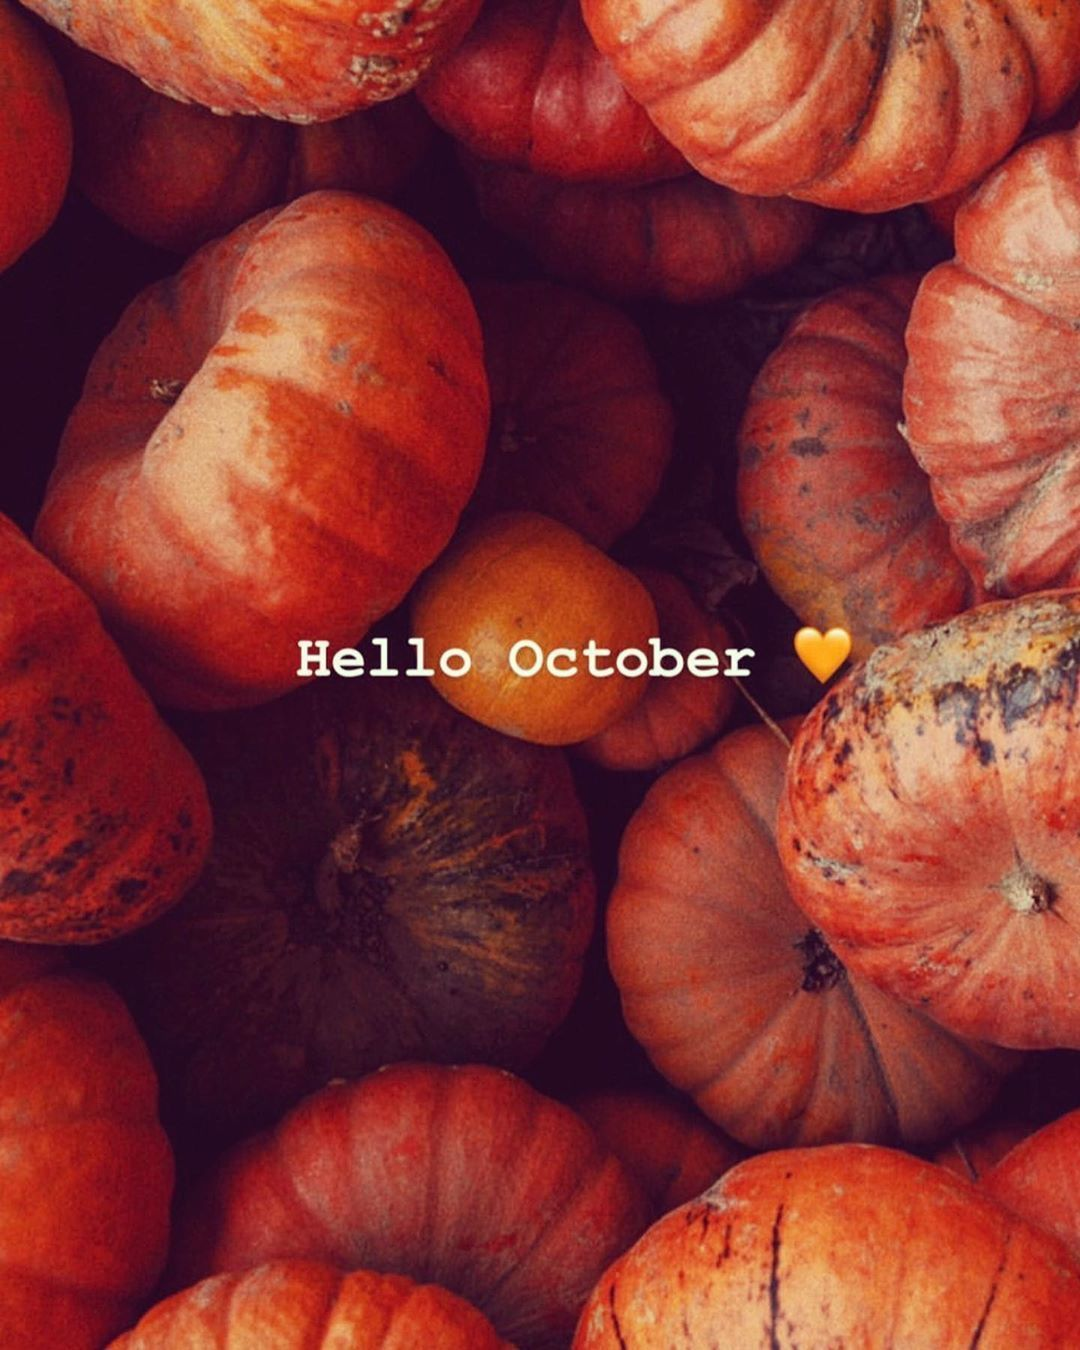 #october #octobre #newmonth #new #month #autumn #automne #potiron #hotel #hotelbordeaux #bordeaux #tourintendance #tourintendancebordeaux #hoteltourintendance #hello #picoftheday #sun #season #businesstrip #bordeauxmaville #city #trip ©️ @daphnemoreau #octobreautomne #october #octobre #newmonth #new #month #autumn #automne #potiron #hotel #hotelbordeaux #bordeaux #tourintendance #tourintendancebordeaux #hoteltourintendance #hello #picoftheday #sun #season #businesstrip #bordeauxmaville #city #hellooctober